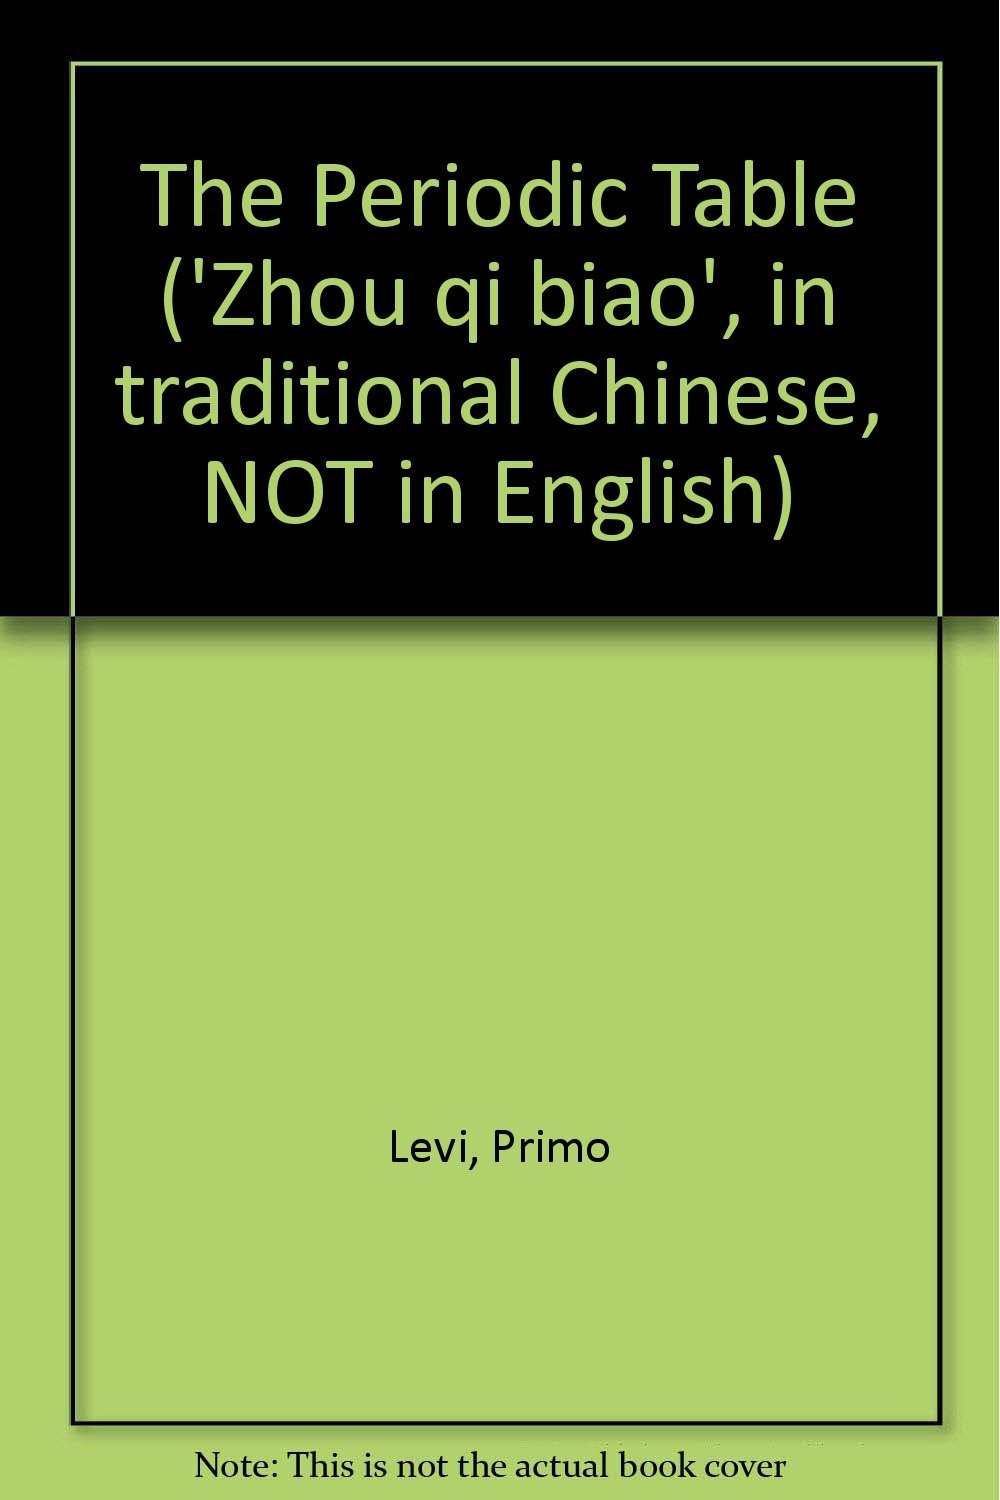 The periodic table zhou qi biao in traditional chinese not in the periodic table zhou qi biao in traditional chinese not in english primo levi 9789571326160 amazon books gamestrikefo Gallery